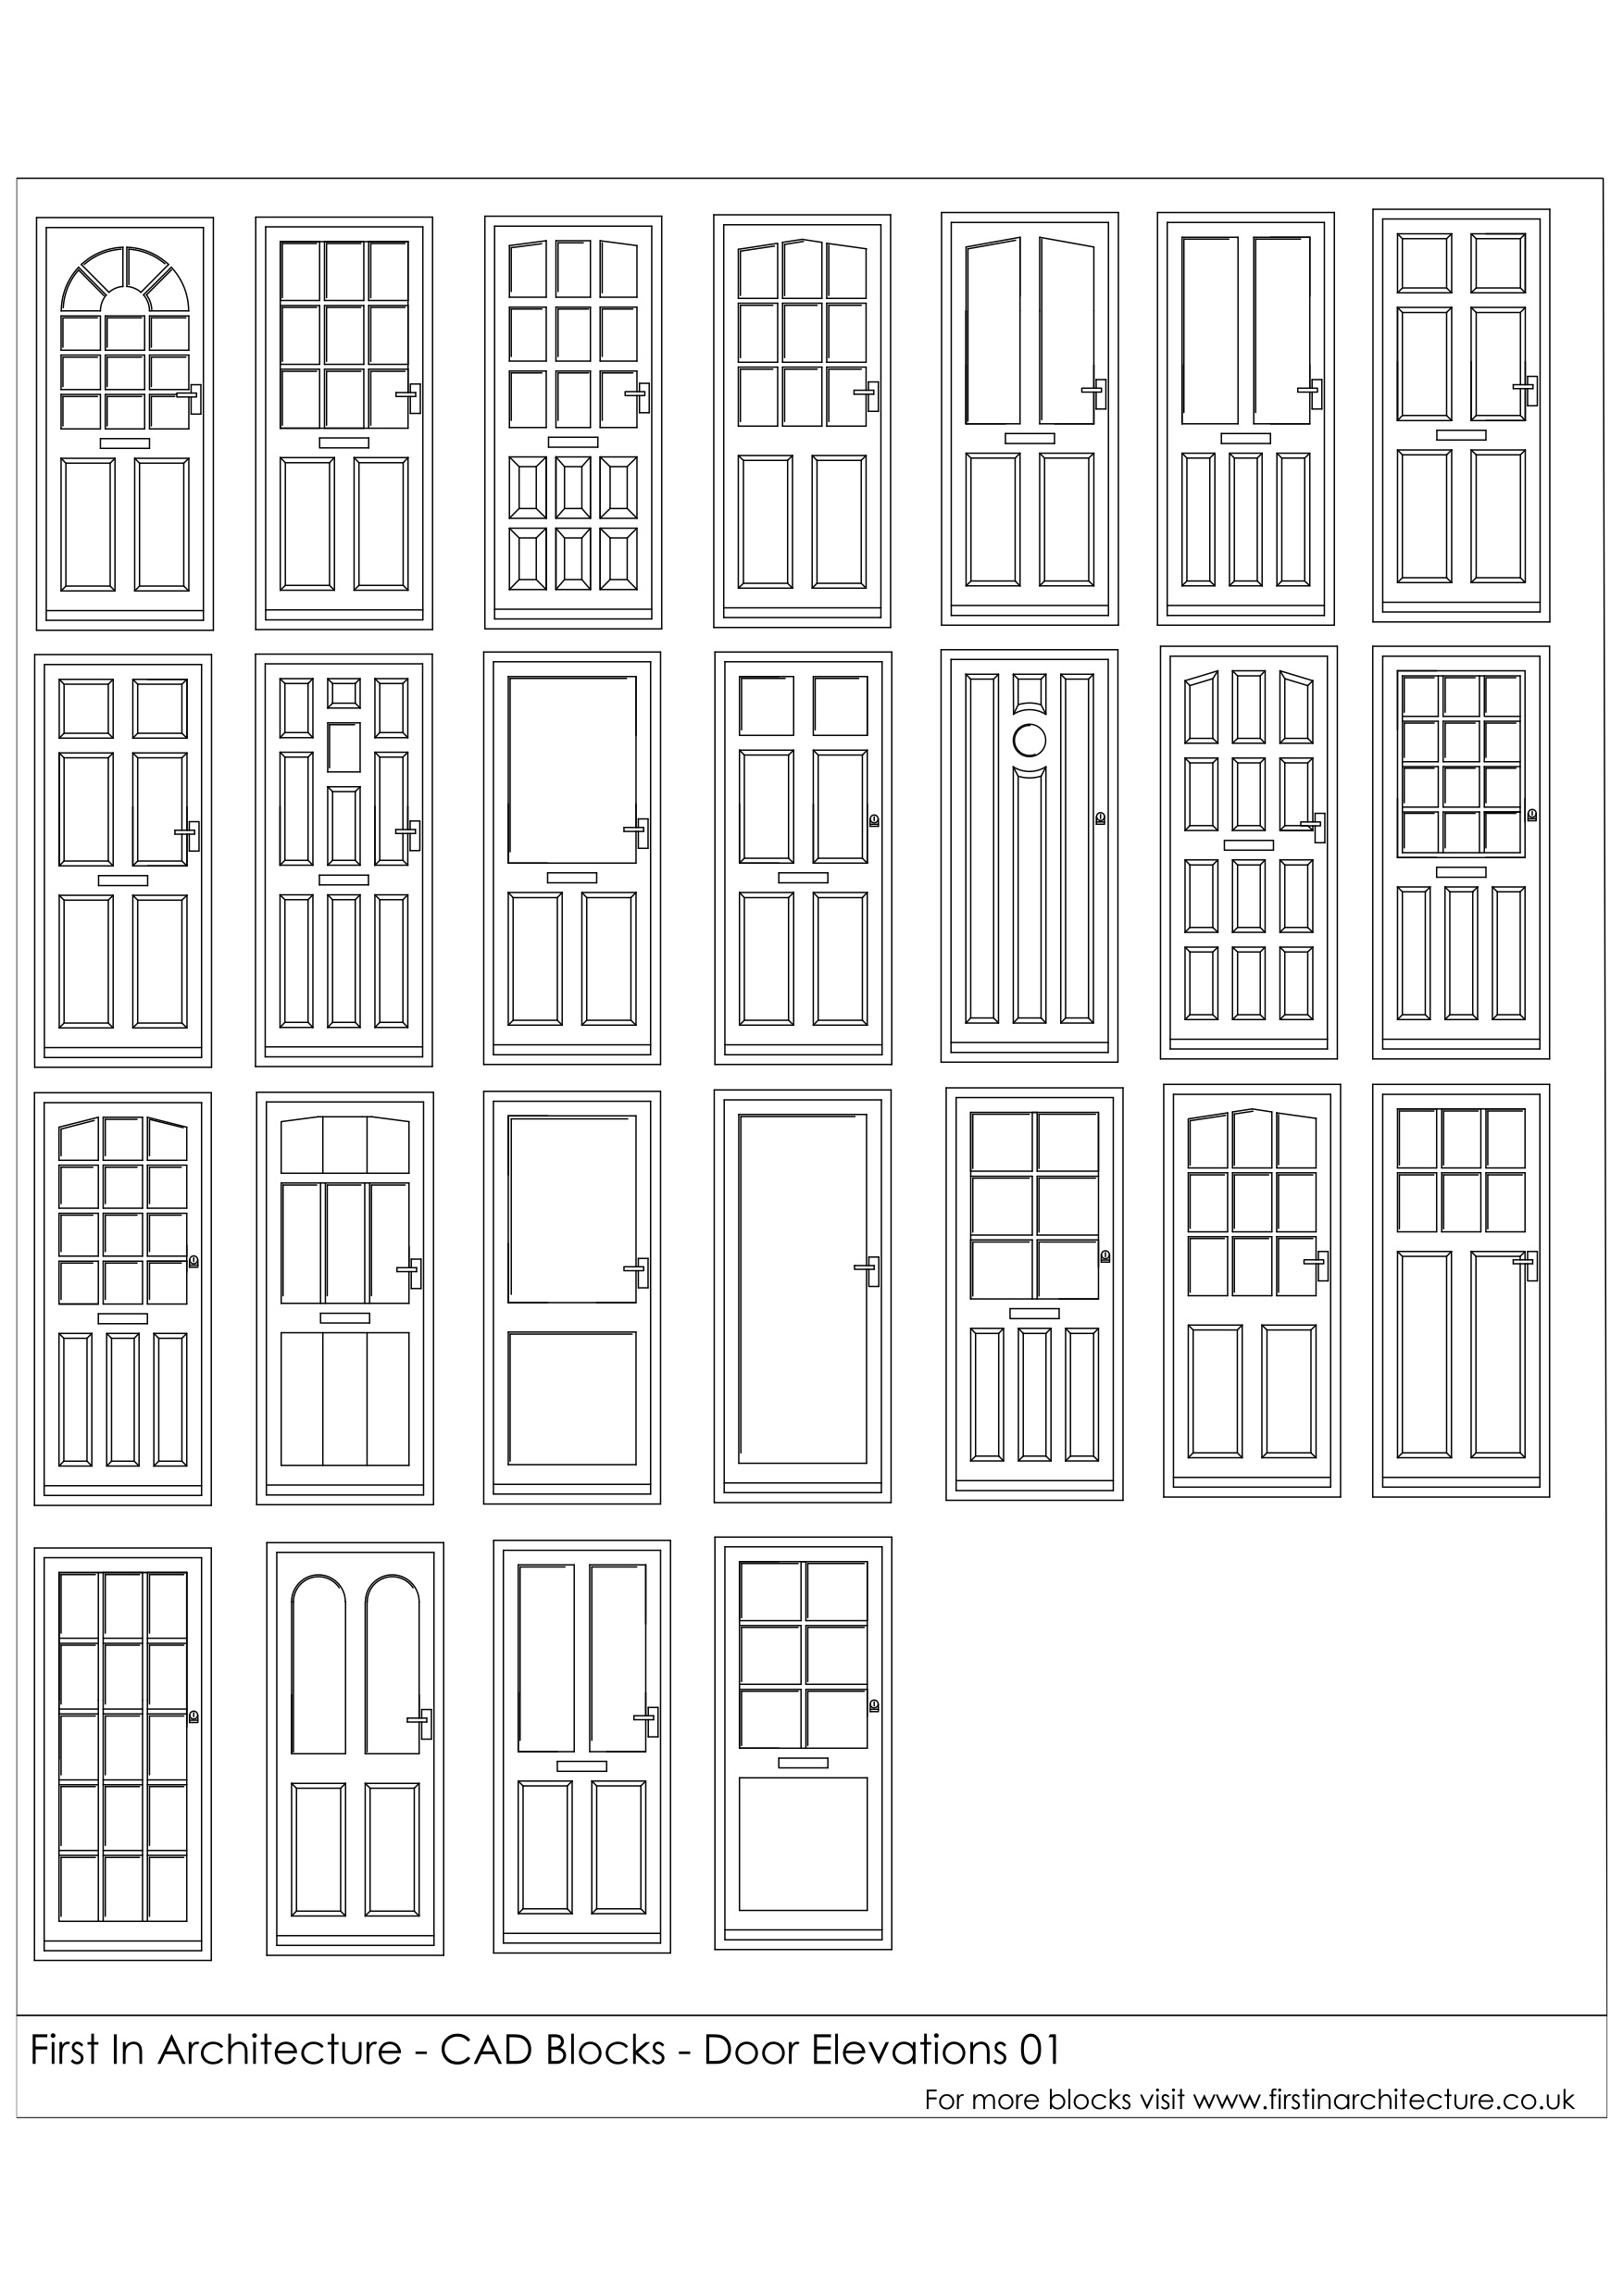 Front Elevation Door Design : Free cad blocks door elevations first in architecture